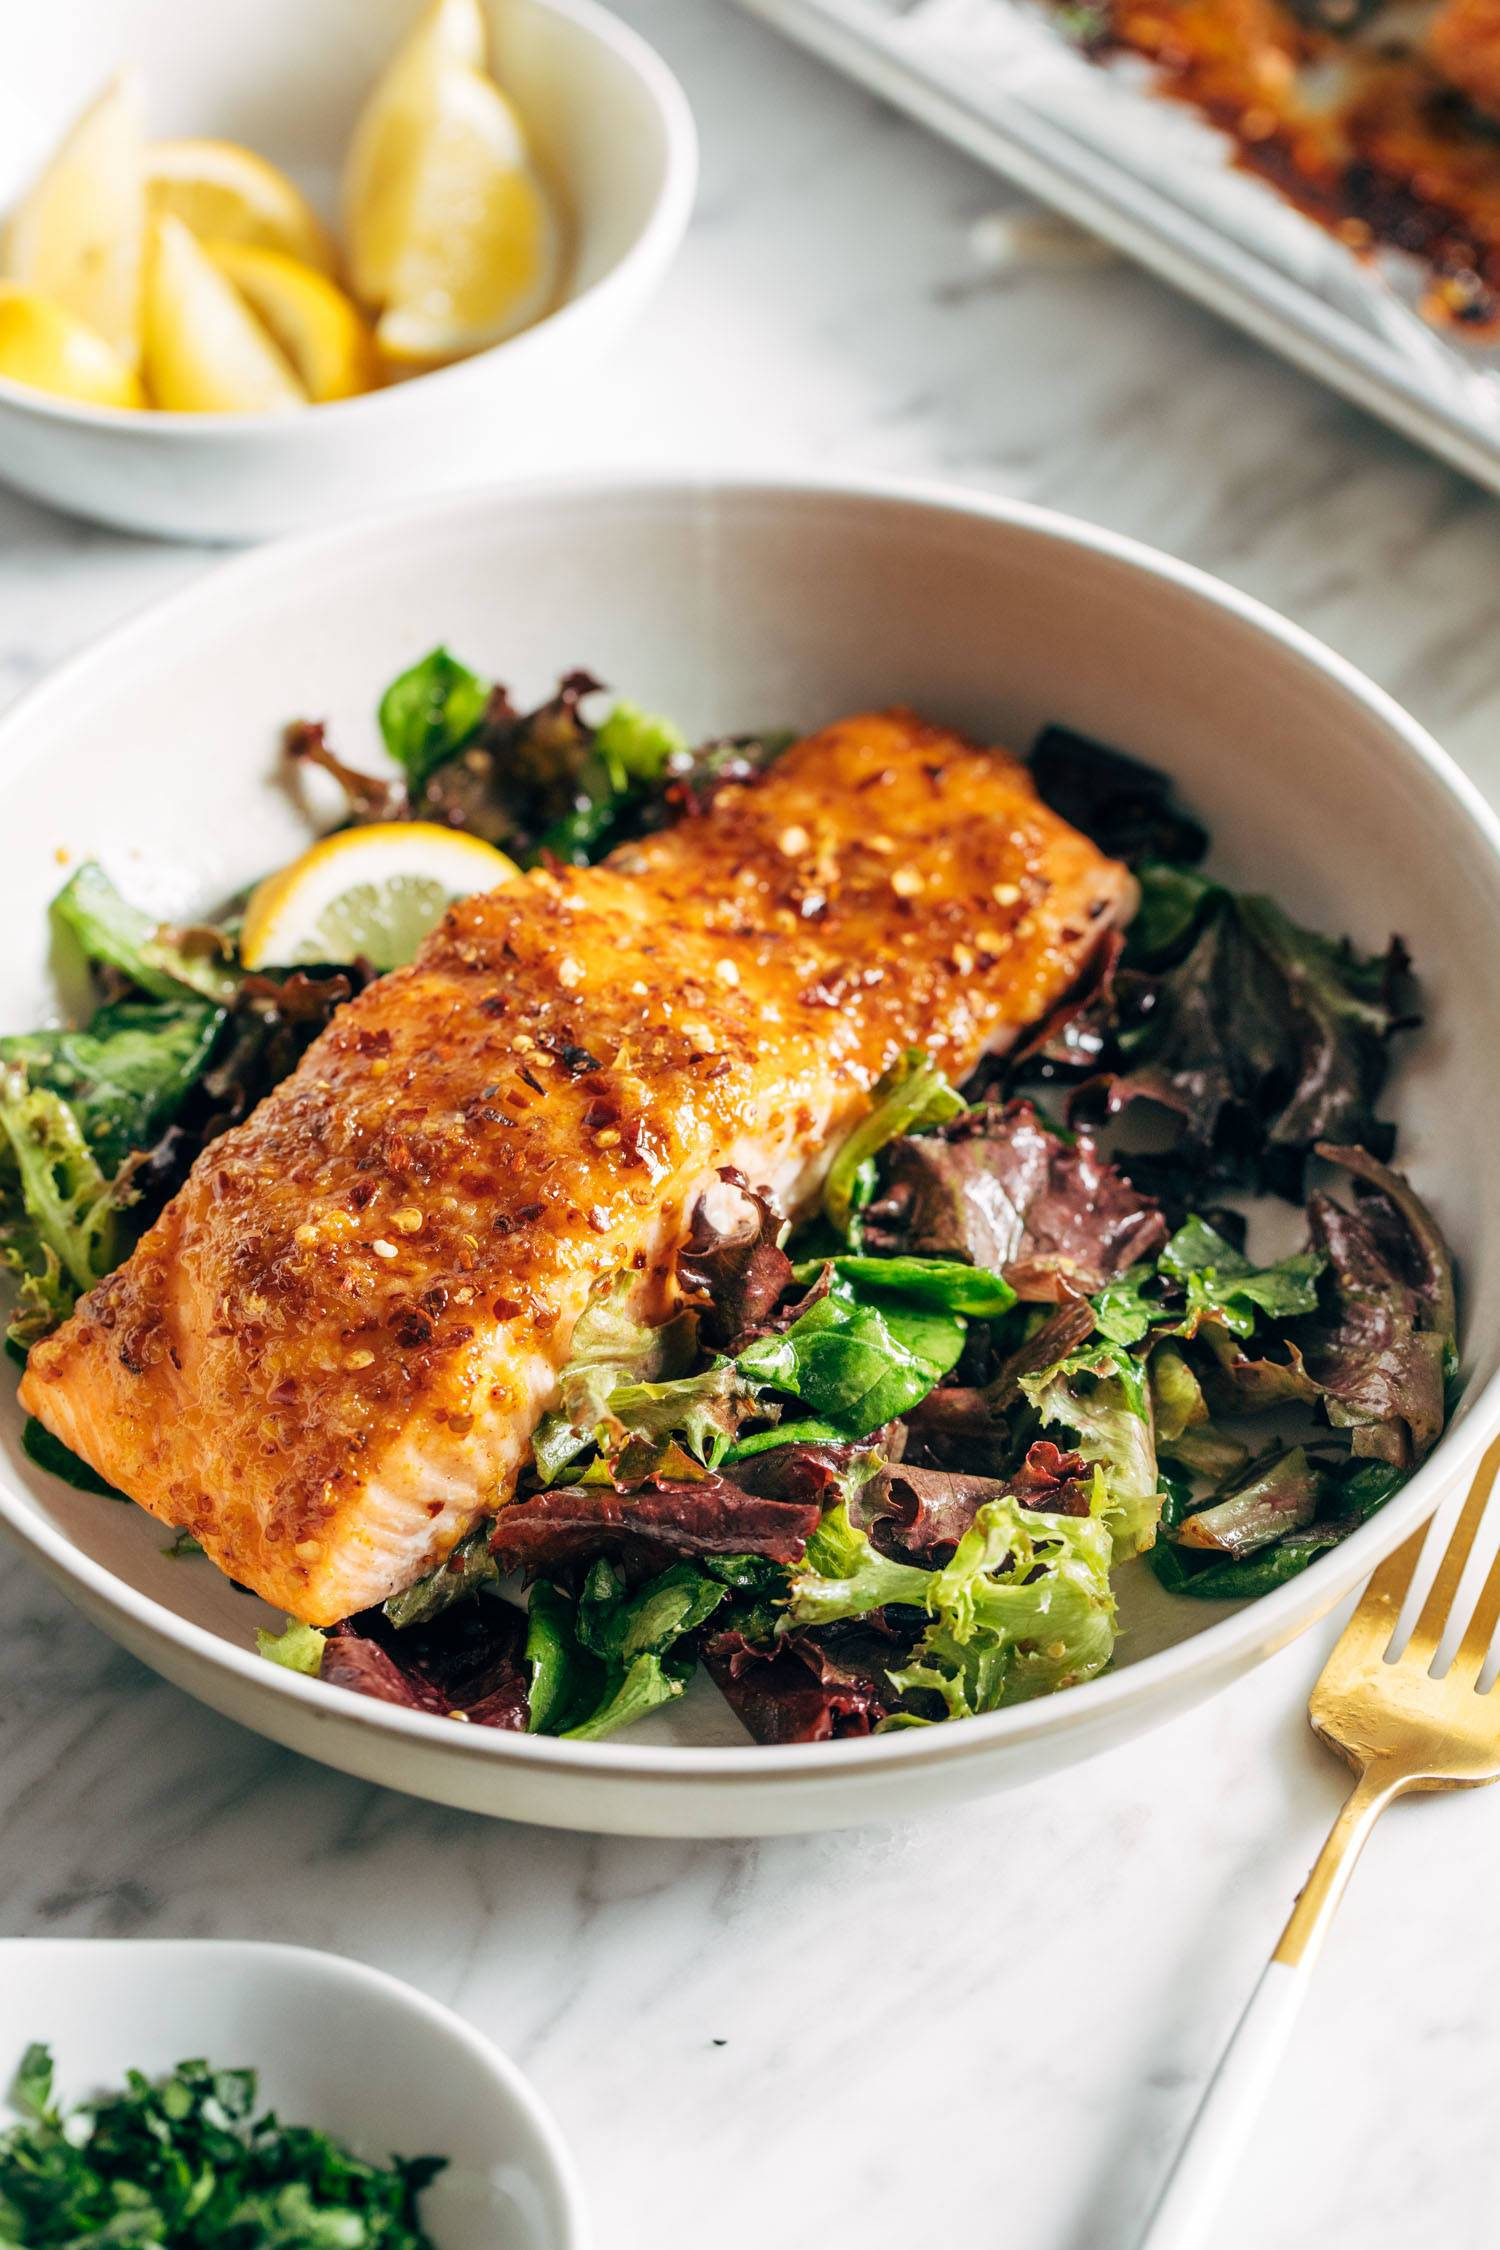 Hot honey salmon in a bowl on top of a green salad. There's a fork on the side of the bowl.